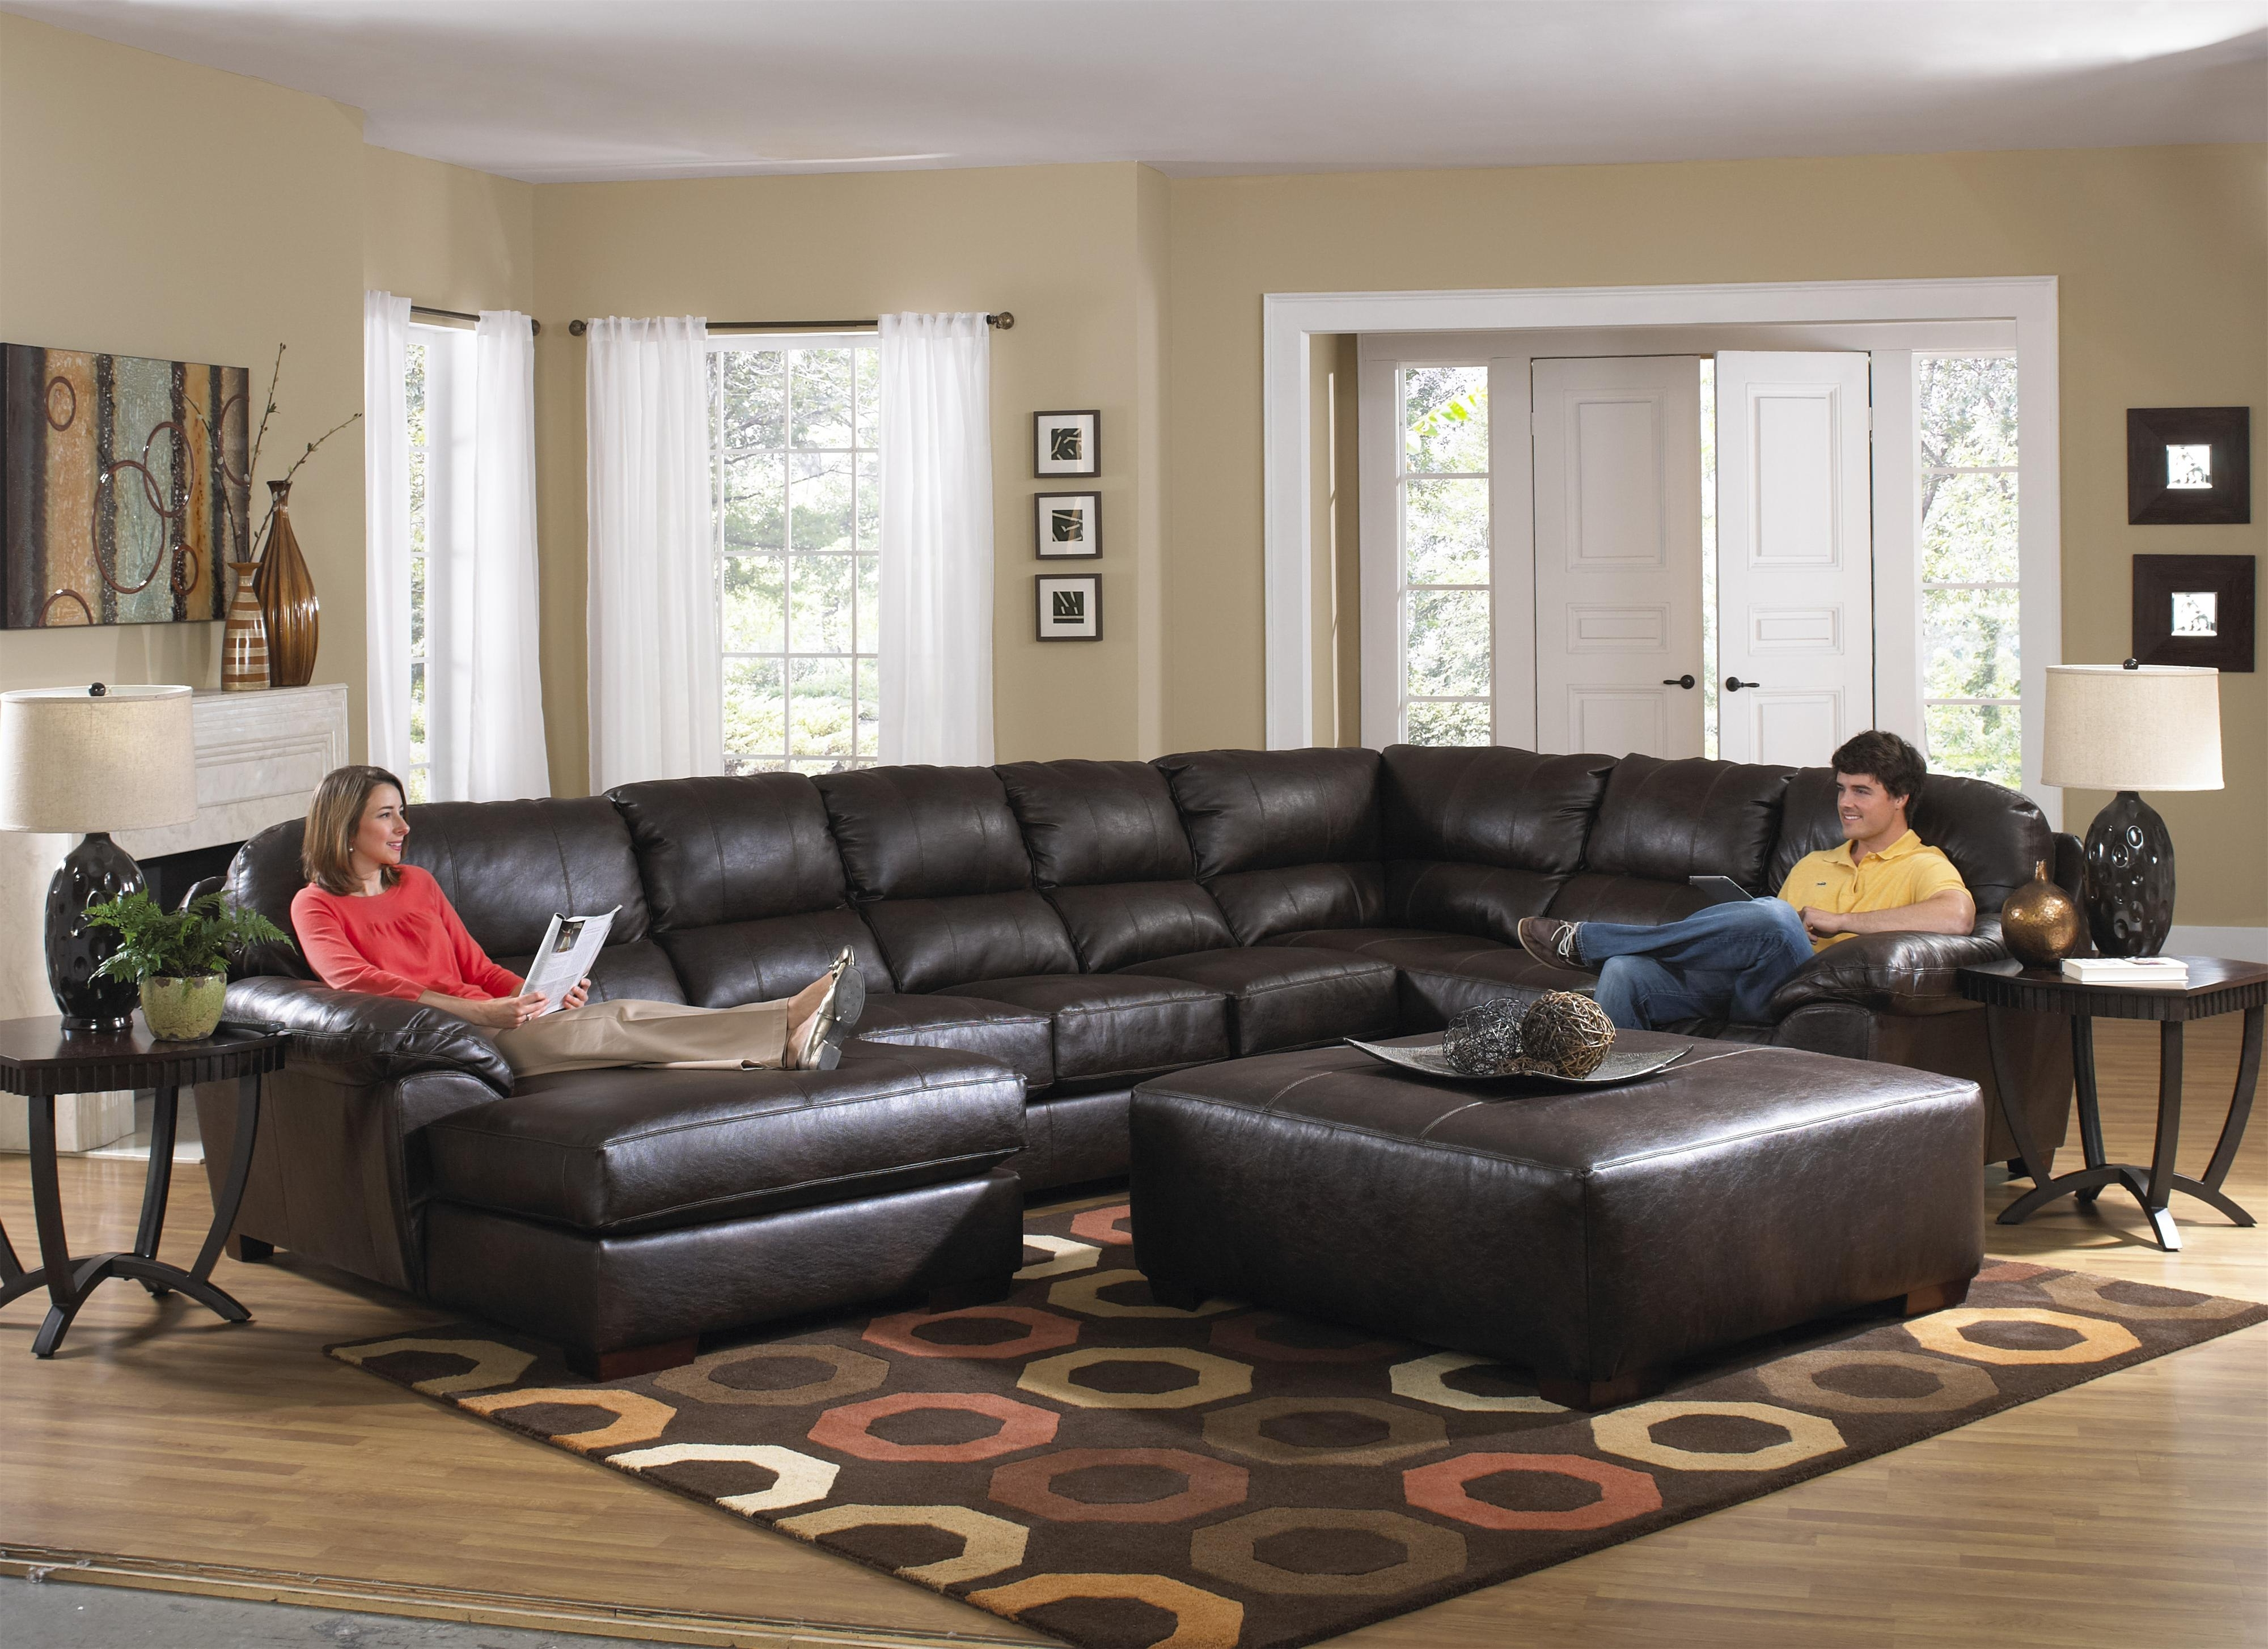 Most Recently Released Sectionals With Ottoman And Chaise Pertaining To Jackson Furniture Lawson Two Chaise Sectional Sofa With Five Total (View 13 of 15)